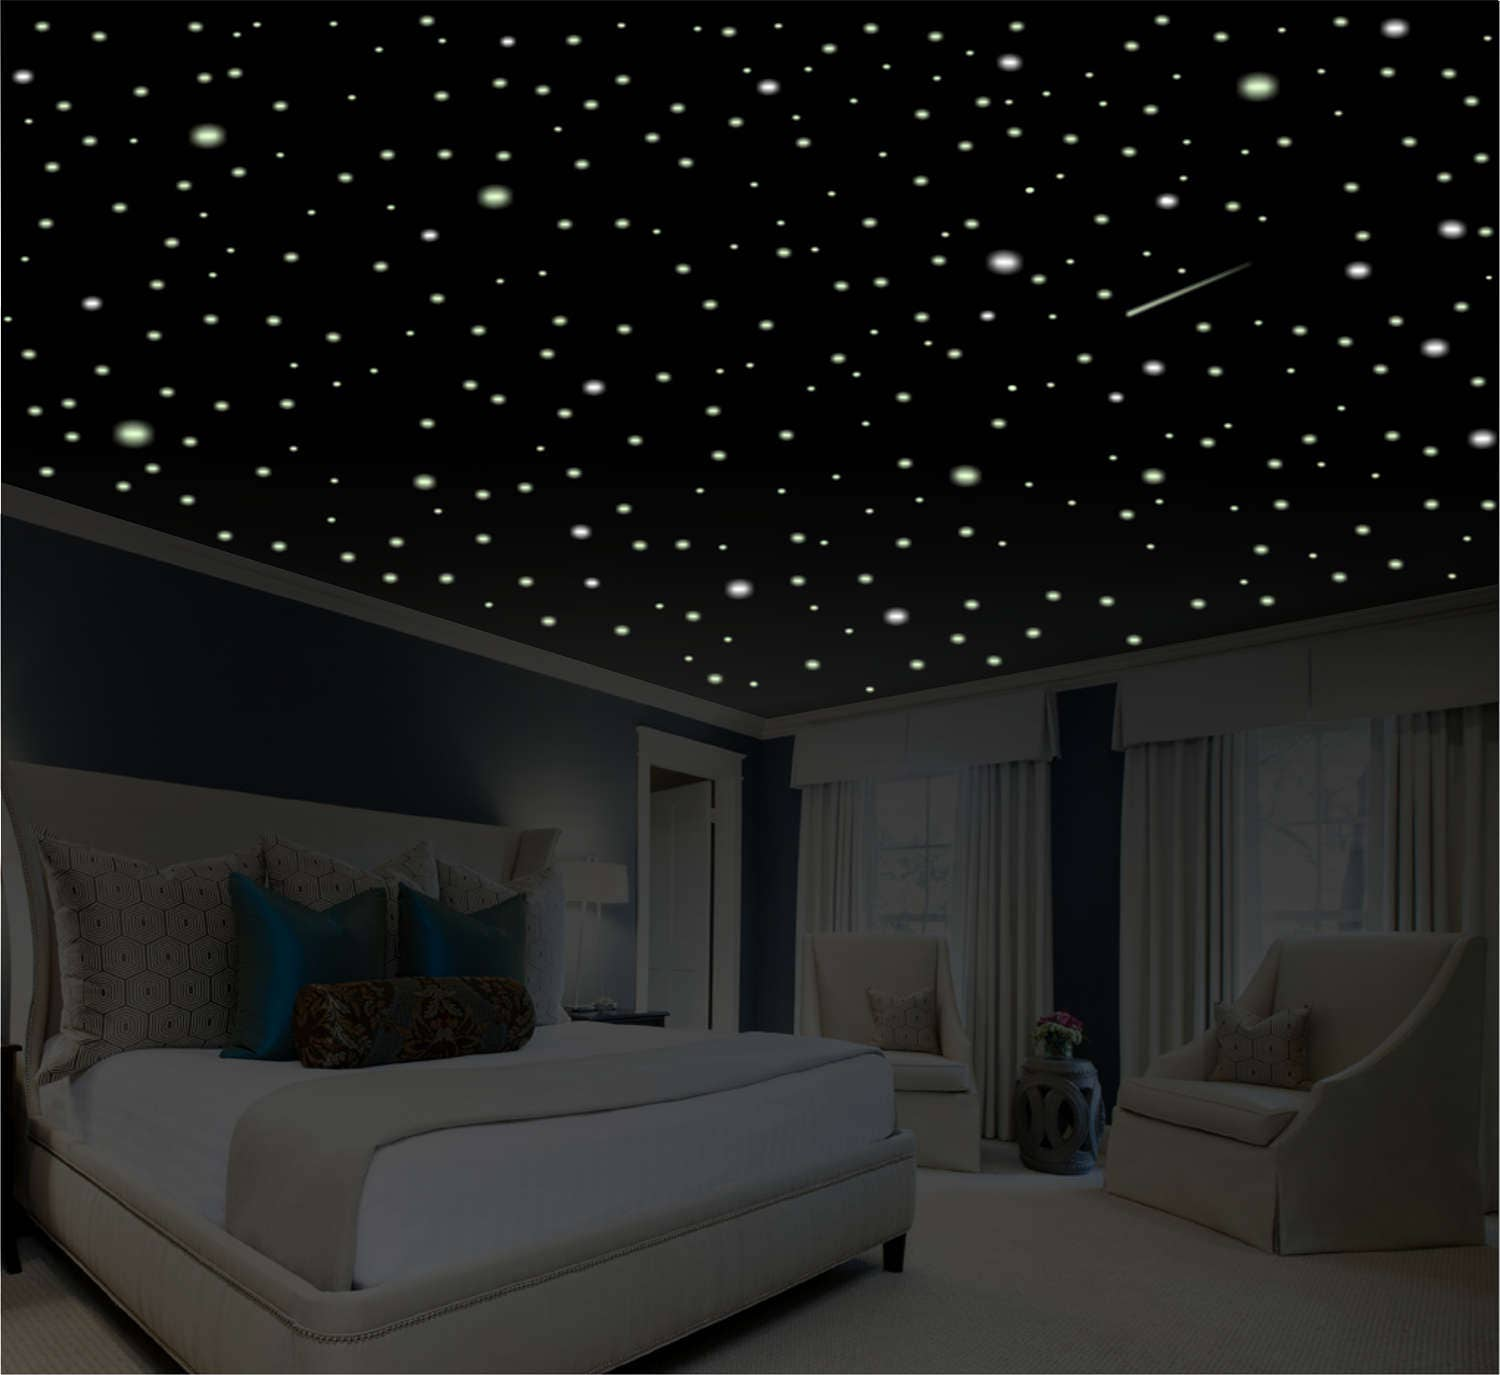 Romantic bedroom decor star wall decal glow in the dark zoom amipublicfo Choice Image